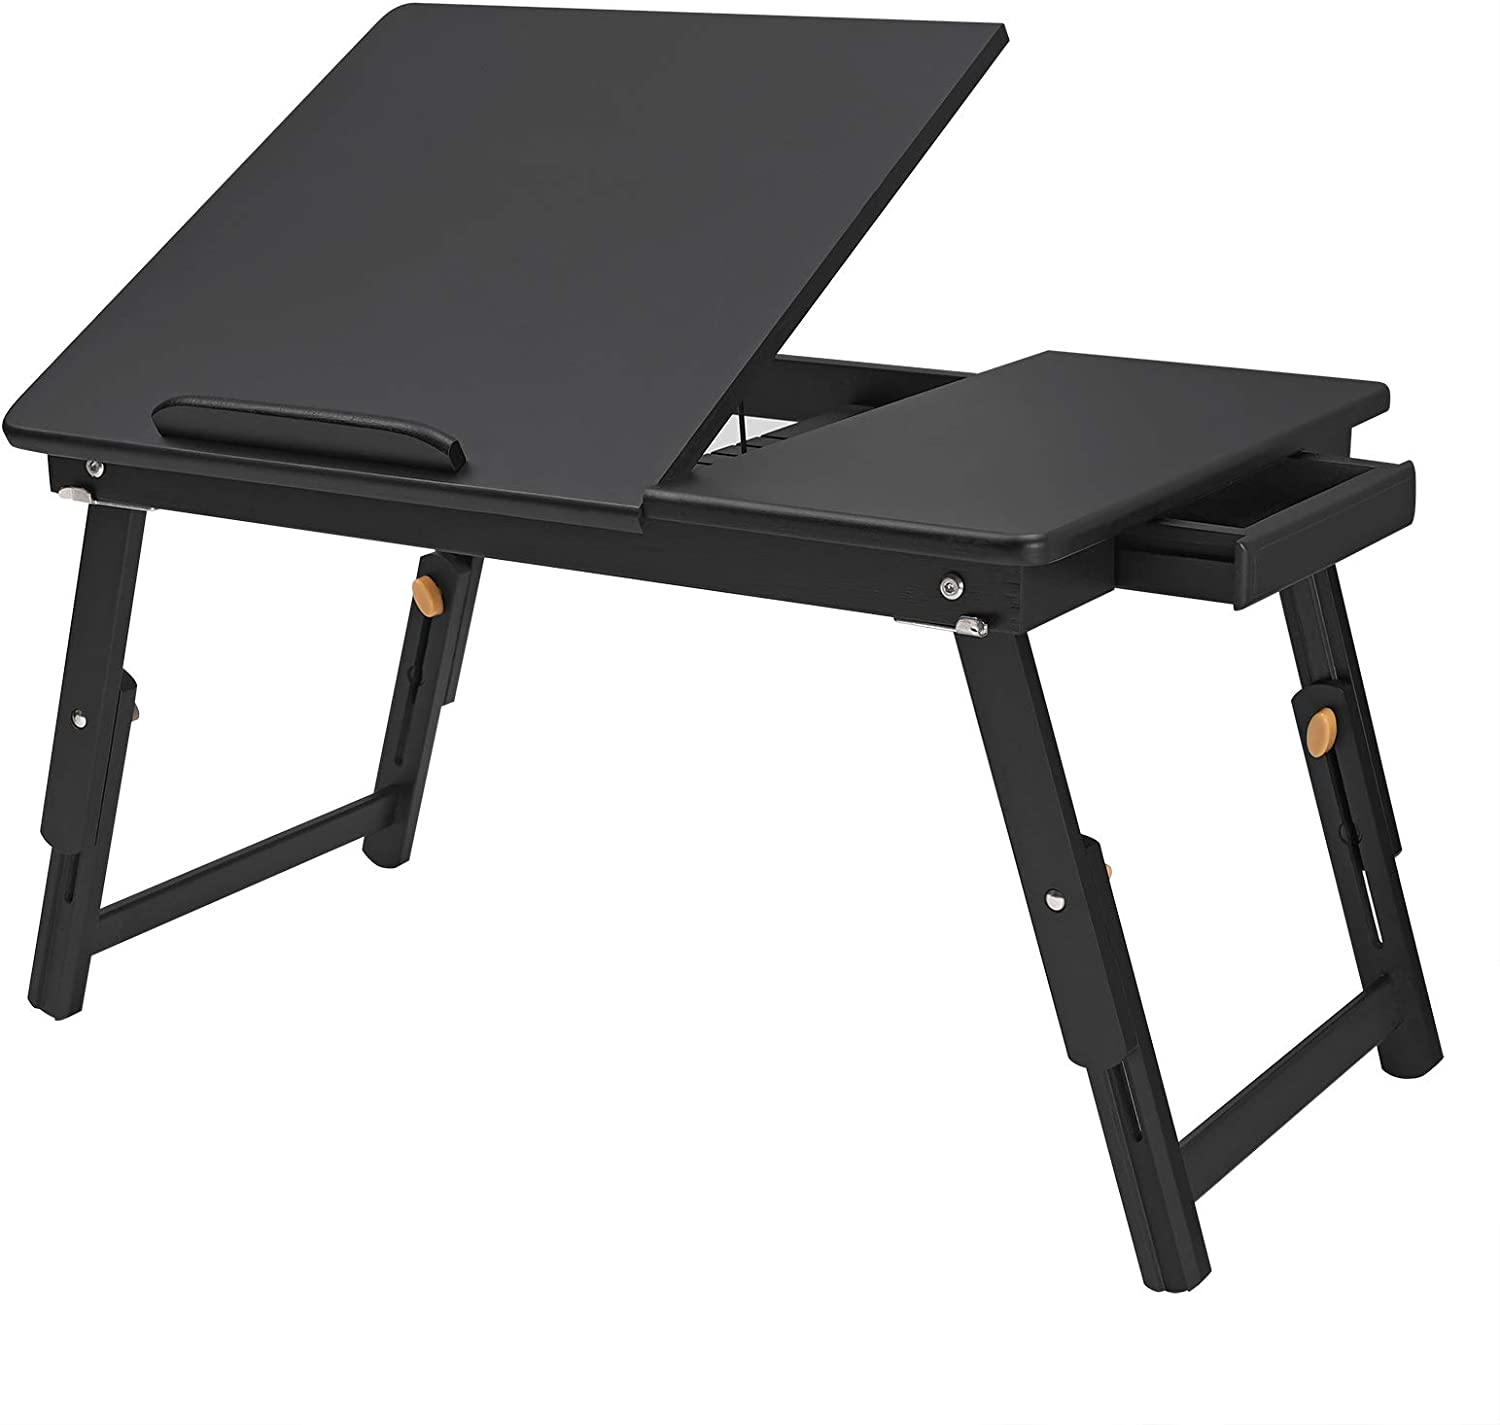 SONGMICS Multi-Function Lapdesk Table, Foldable Bed Tray, Adjustable Breakfast Table, with Tilting Top, Storage Drawer, Bamboo Wood, Black ULLD01BK